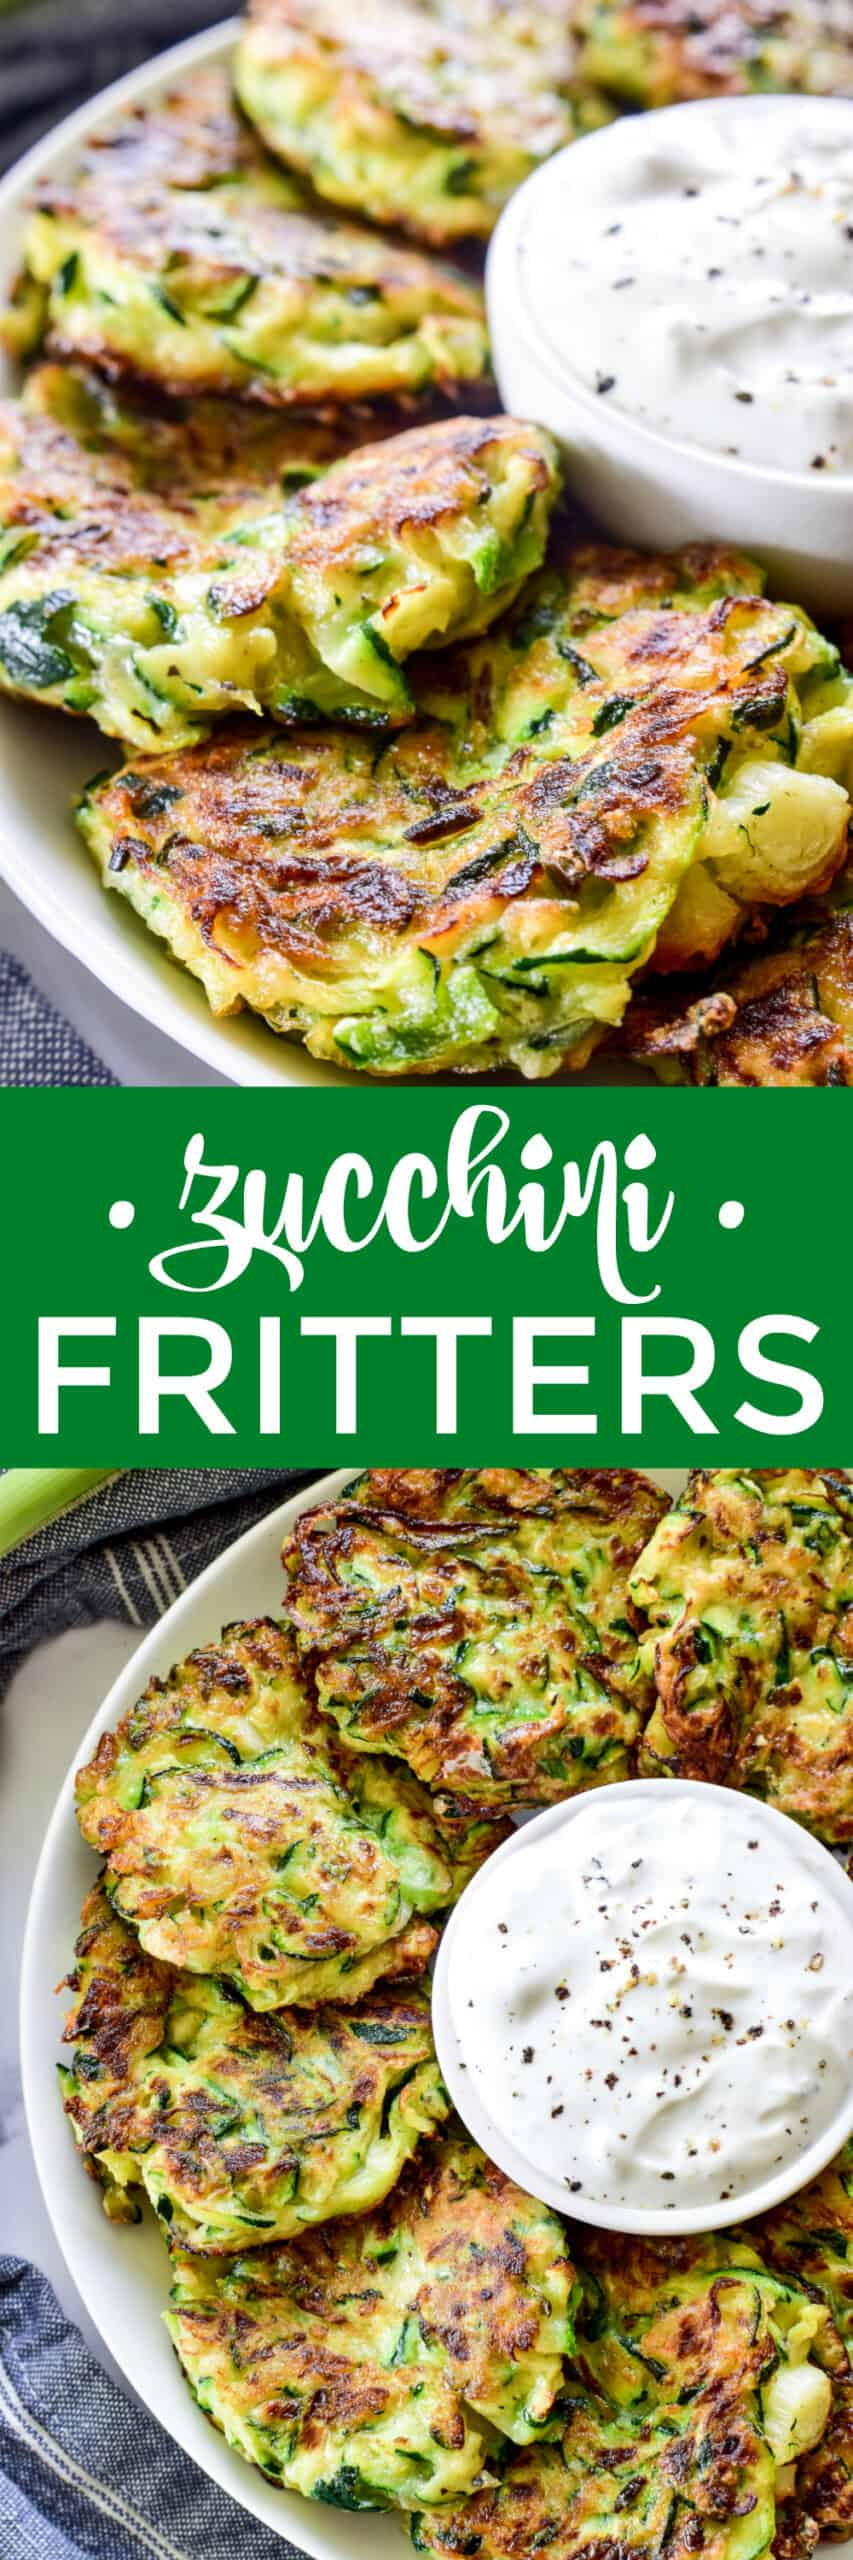 Collage image of Zucchini Fritters